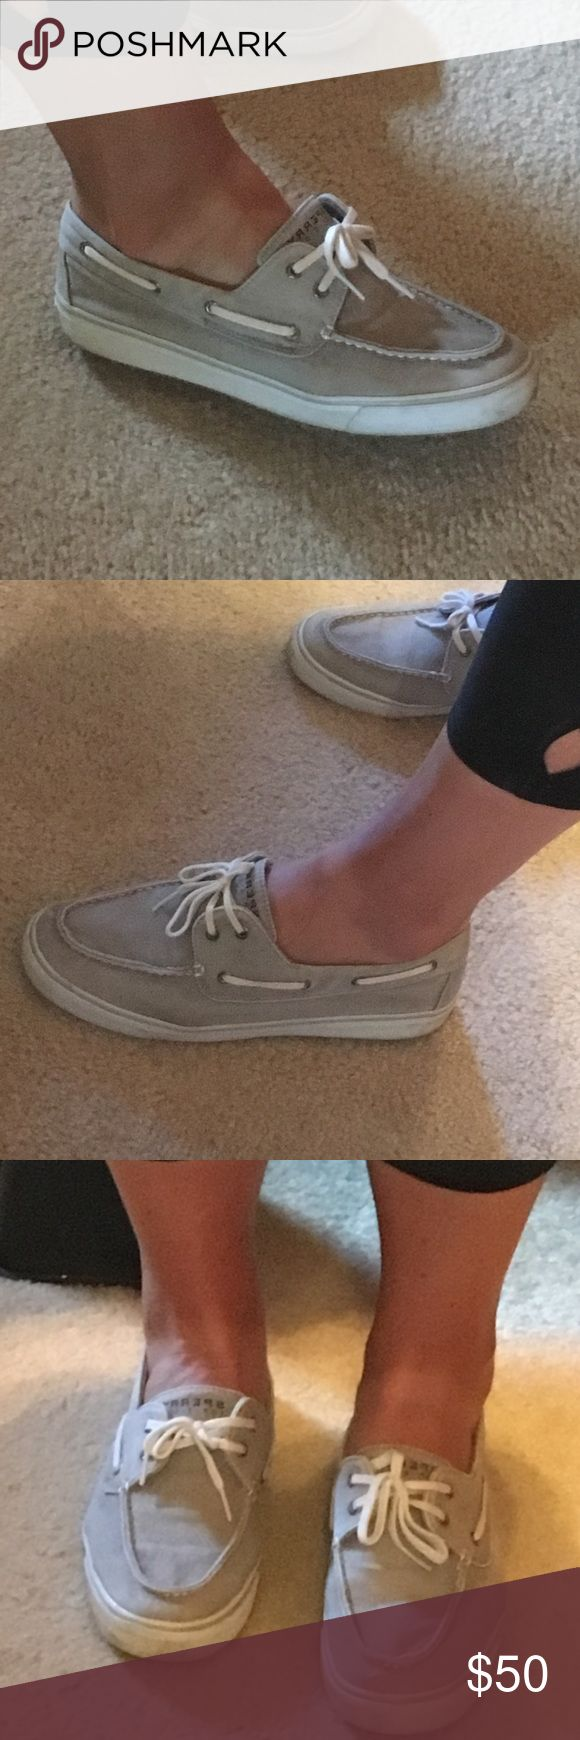 Boat shoes and slippers Both worn and broken in but still comfortable Sperry Top-Sider Shoes Slippers